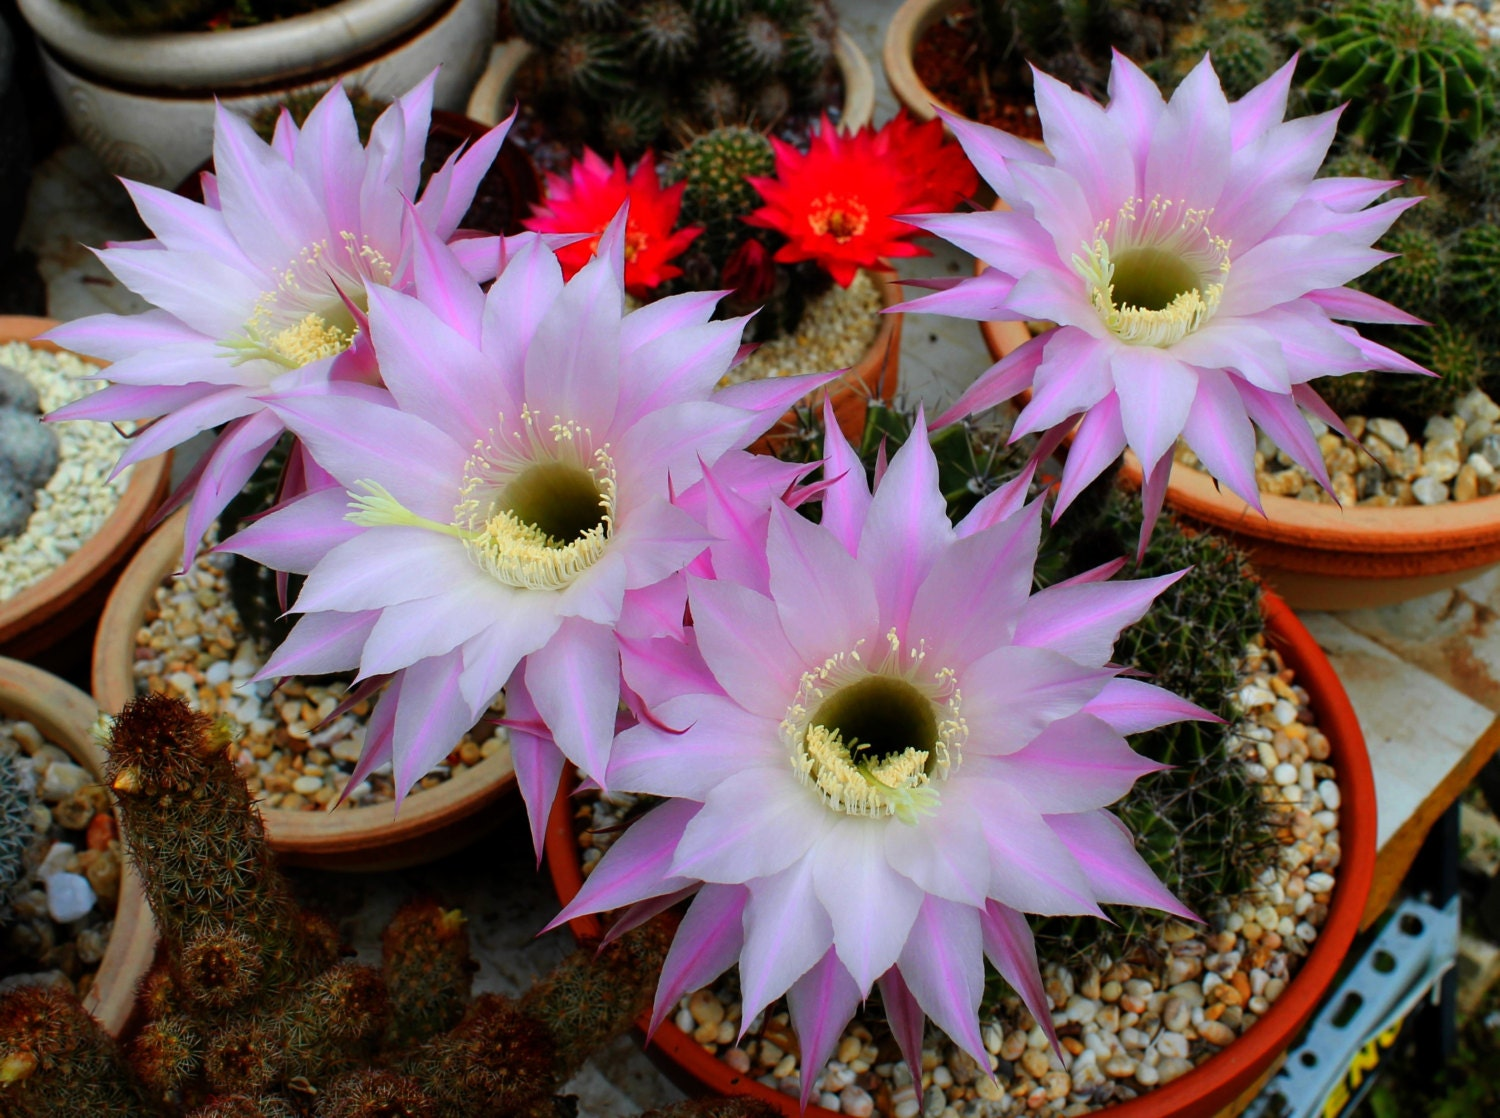 Cactus Seeds 40 Seeds Echinopsis Pink Flowers Cacti Succulent Etsy